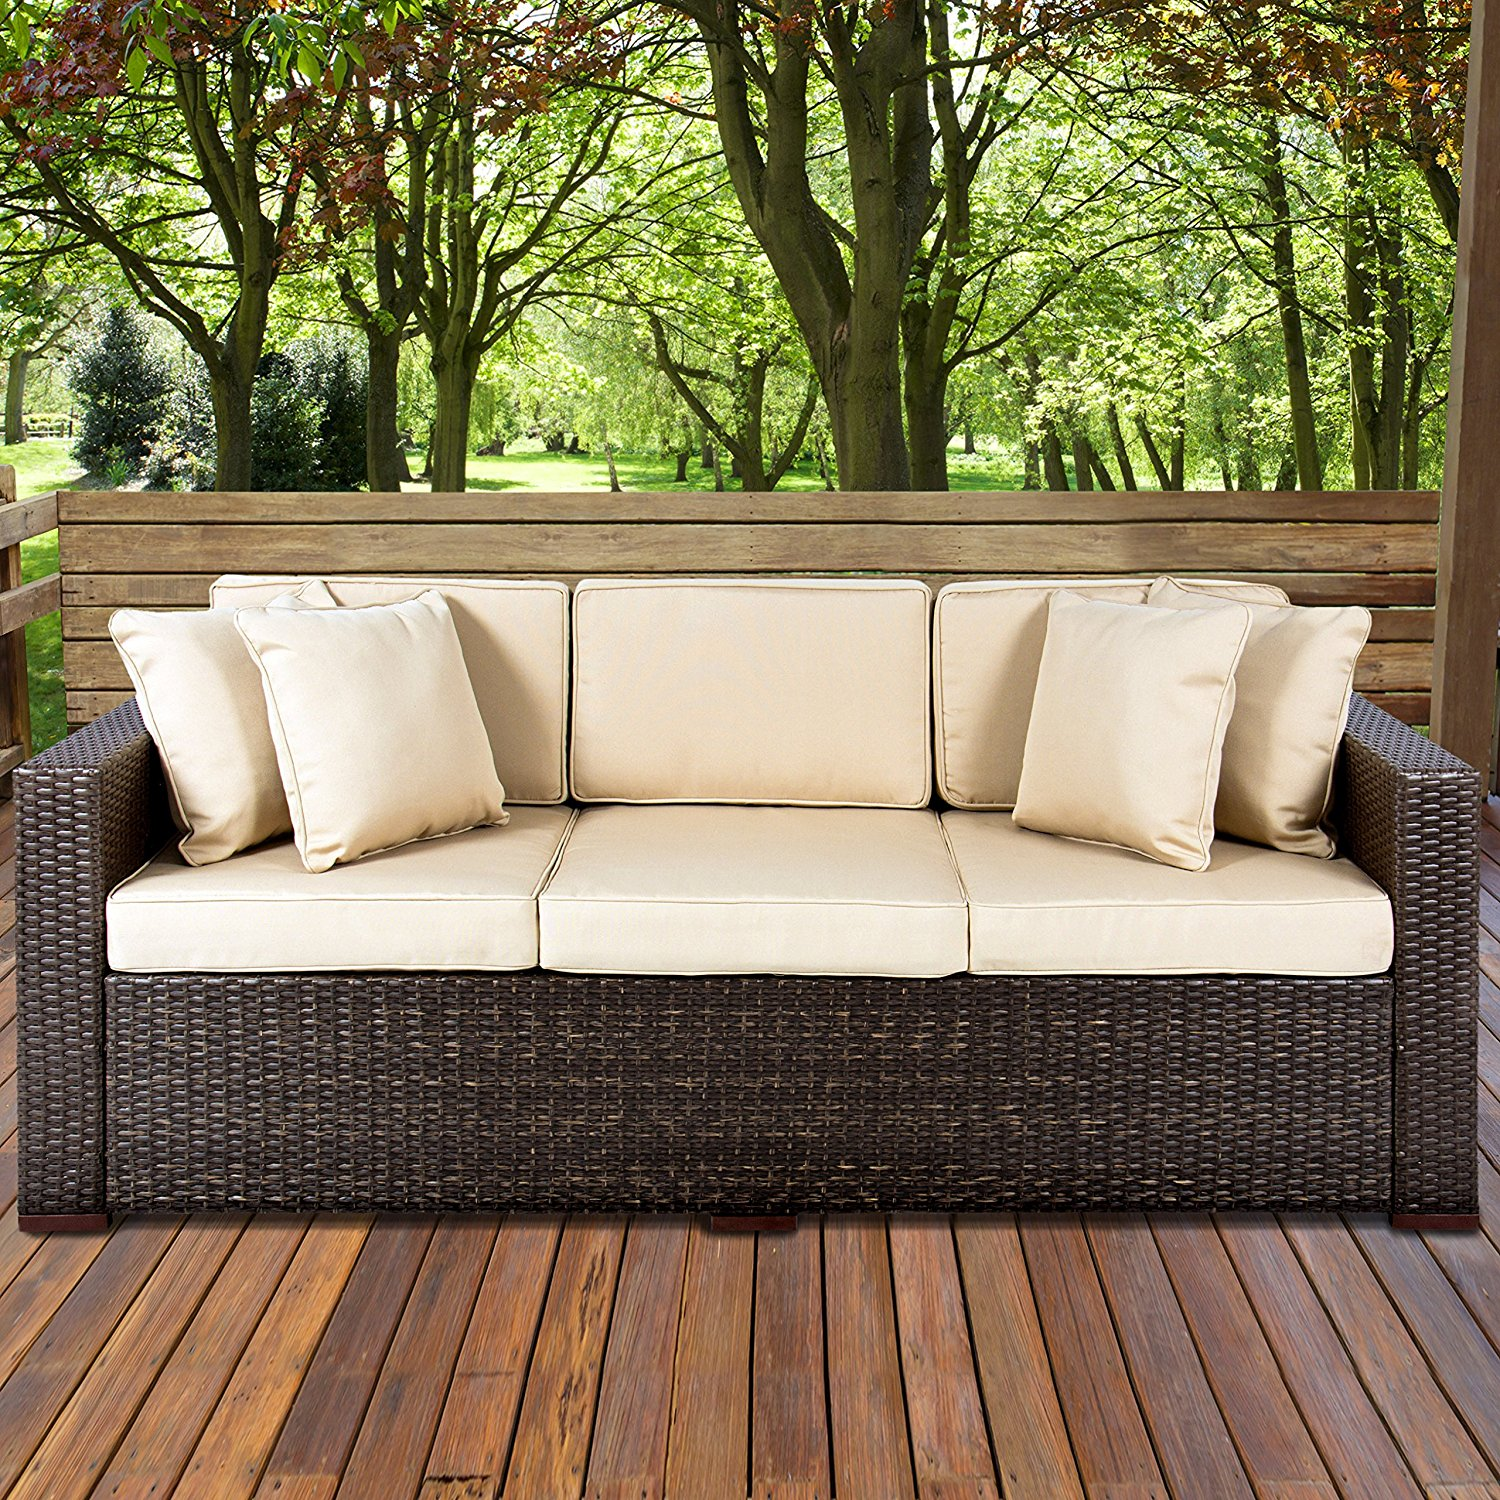 Pleasant Top 10 Best Patio Sofas In 2019 Top Best Pro Review Download Free Architecture Designs Sospemadebymaigaardcom